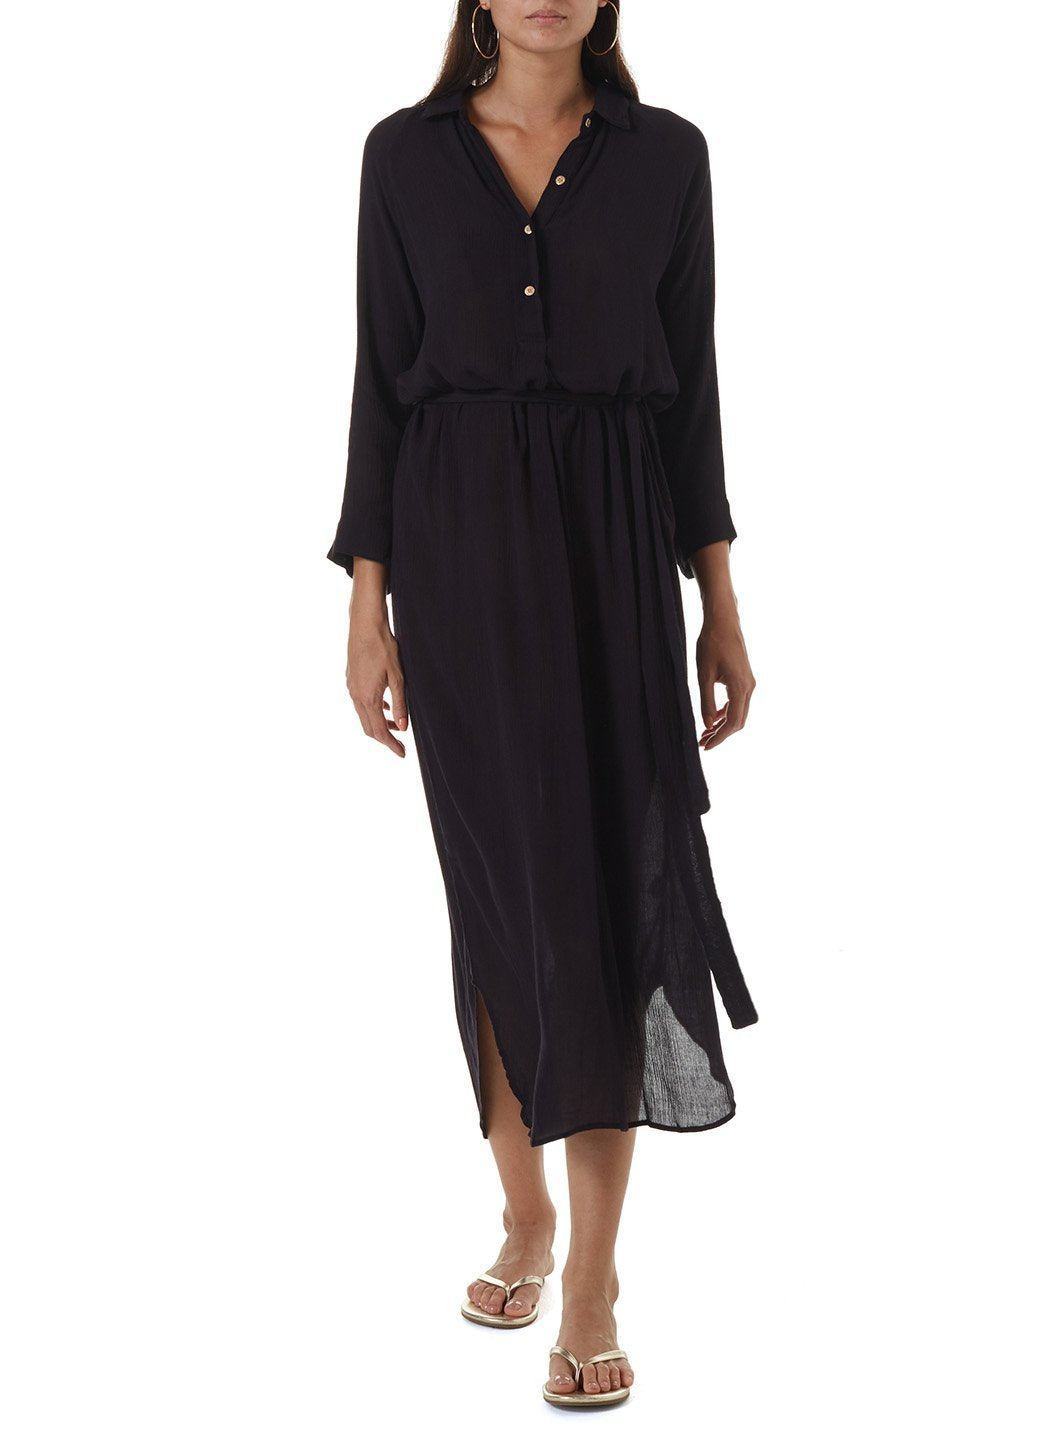 alesha black long shirt dress